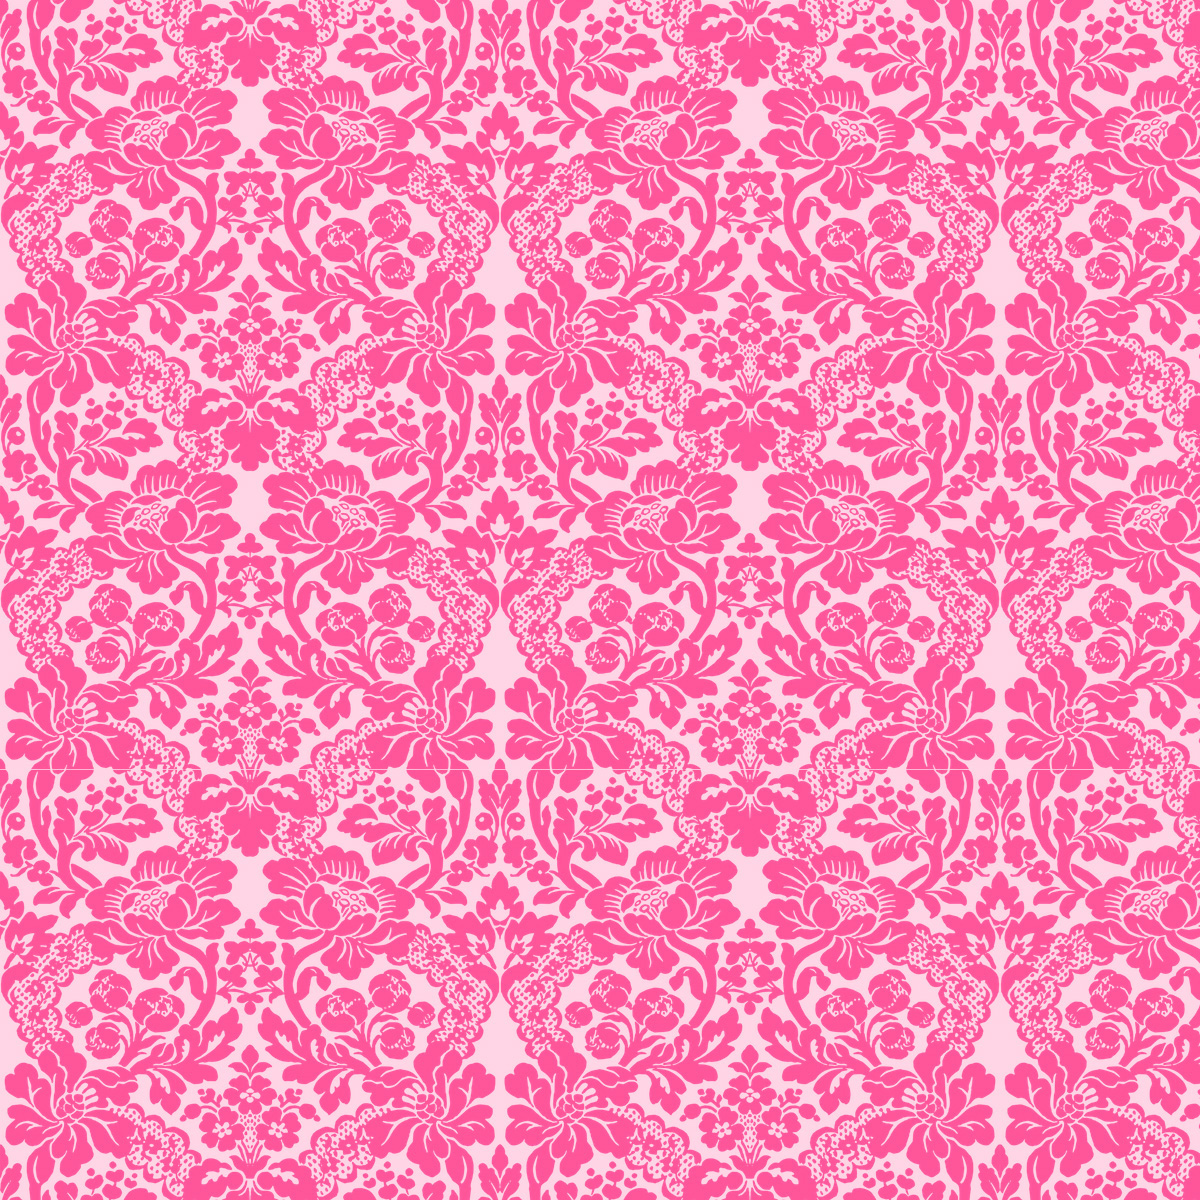 4 Images of Printable Damask Paper